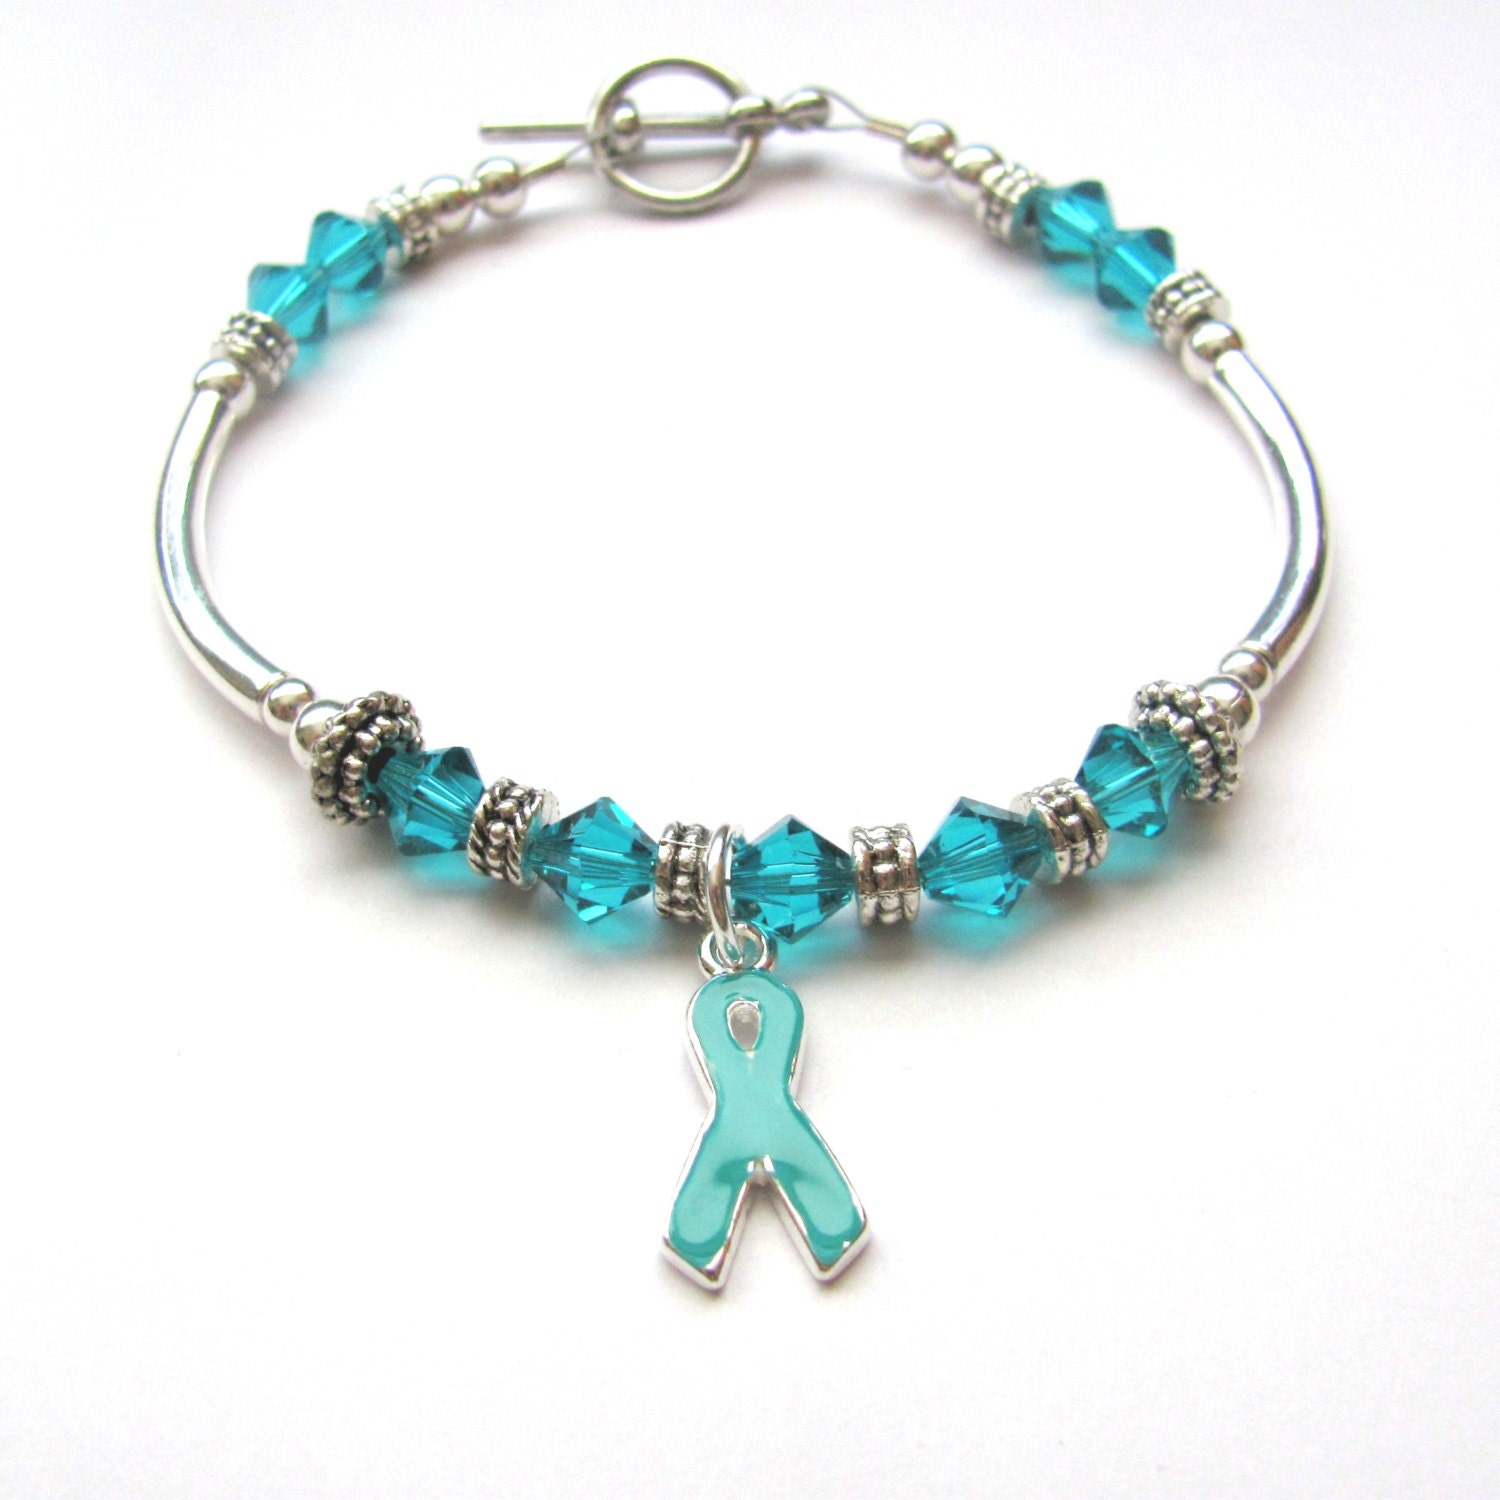 blue charm cancer p colon il fatigue silver fullxfull addiction recovery ribbon colorectal navy chronic bracelet faith